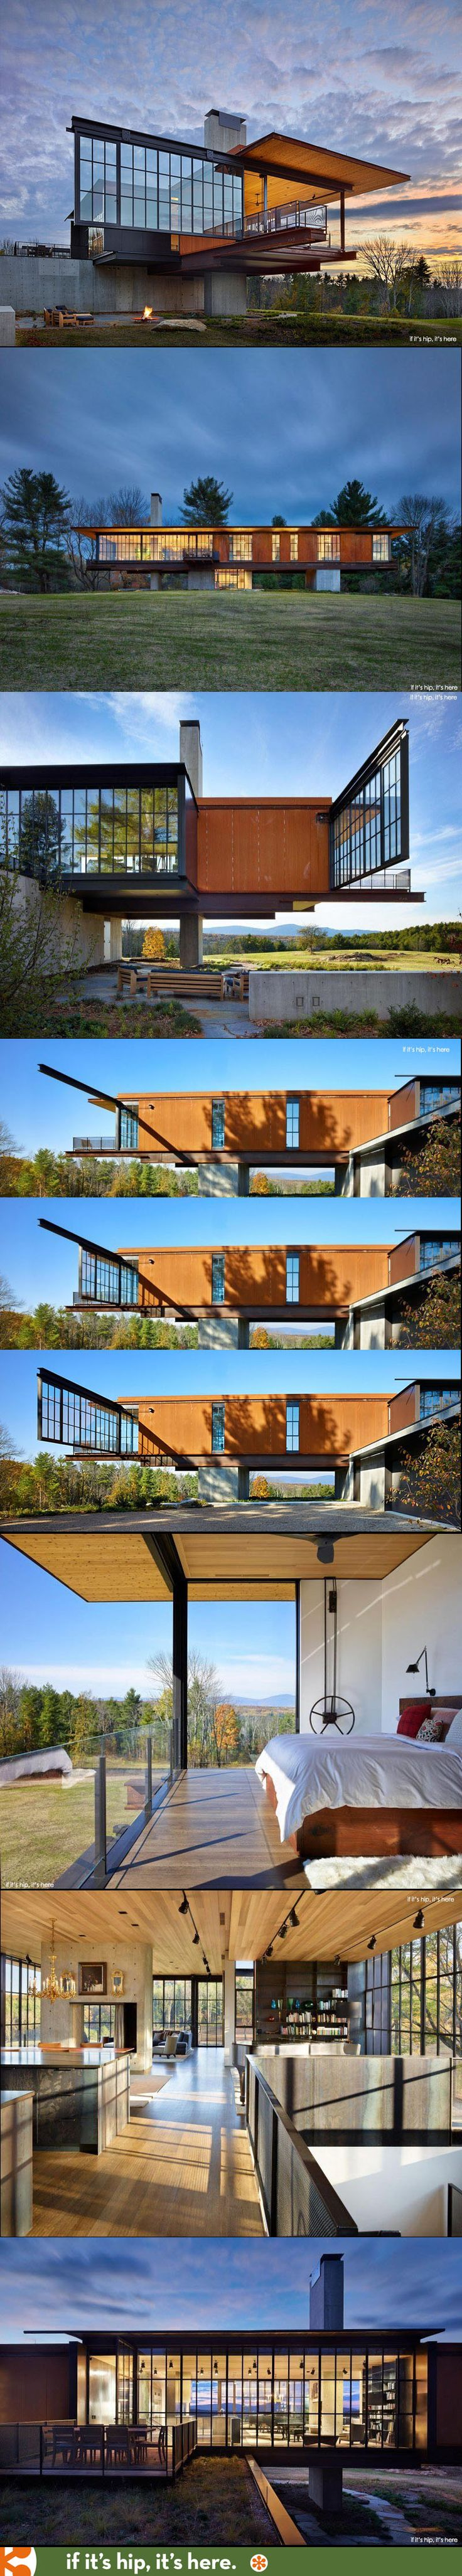 47 best olson kundig images on Pinterest | Architecture, Colors ...